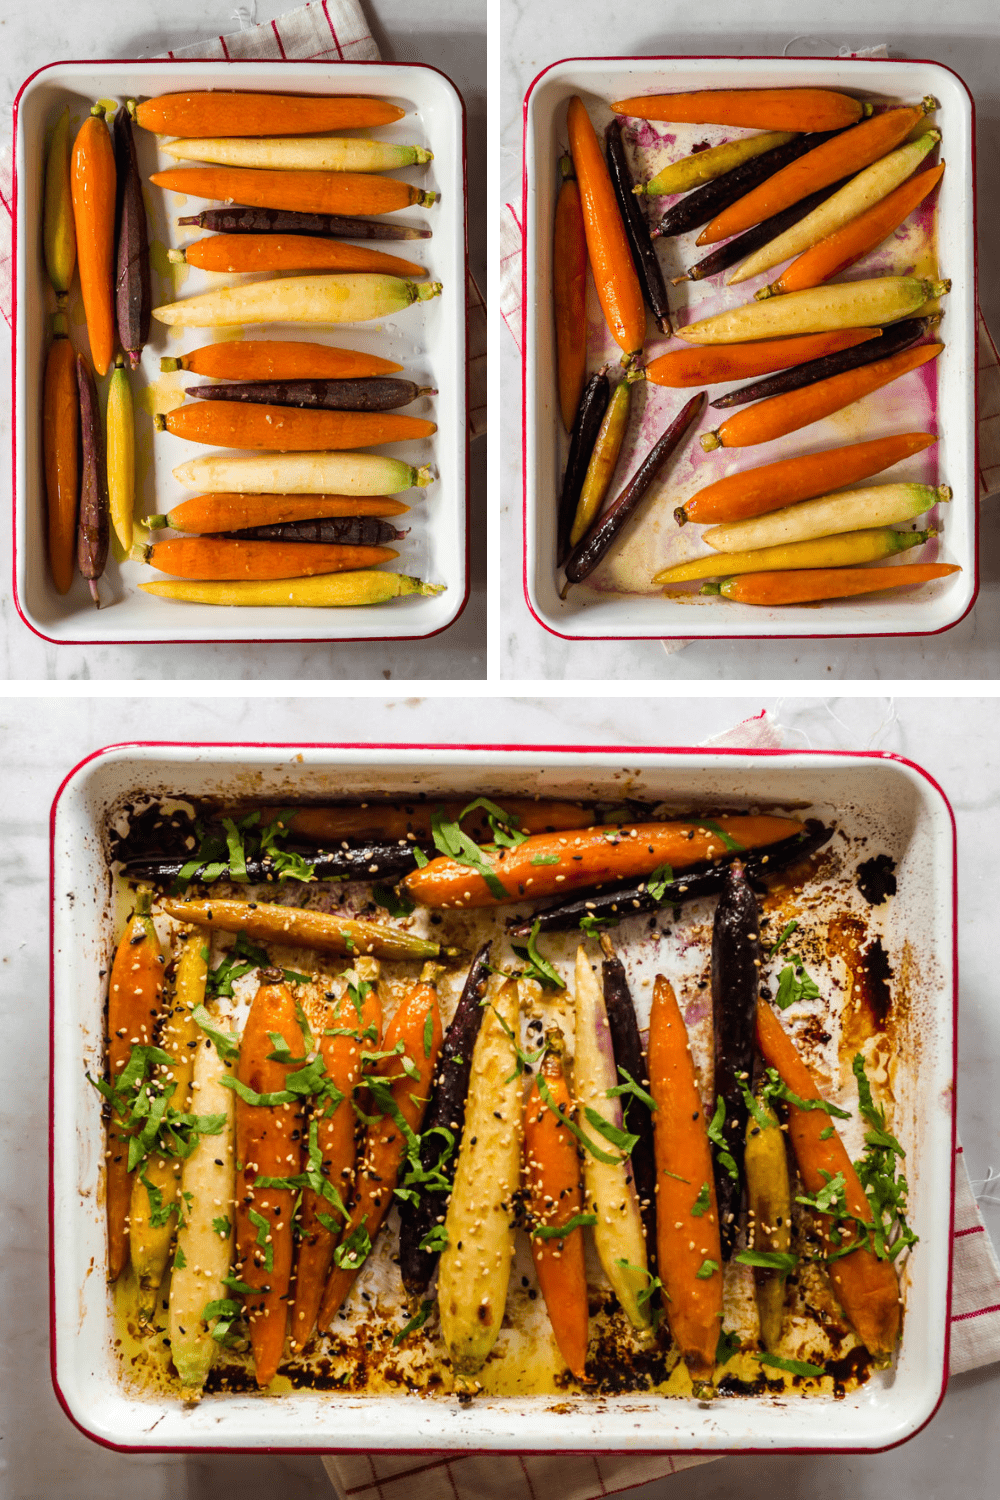 3 images of peeled carrots in a large baking dish.